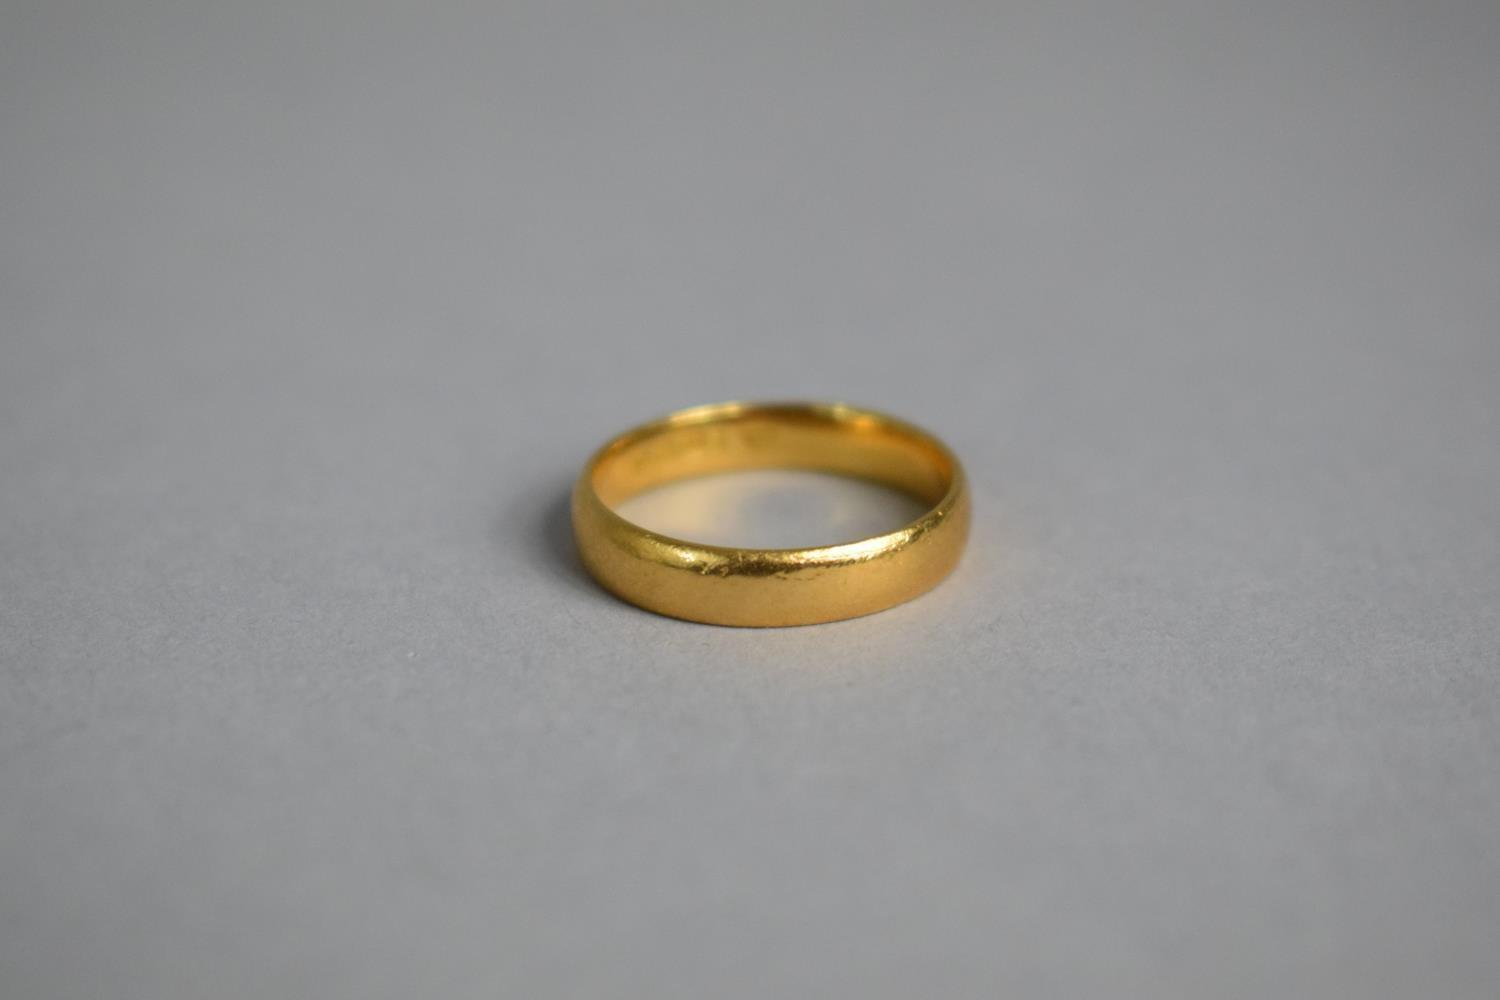 Lot 312 - A 22ct Gold Wedding Band, 3.6gms, Size L.5